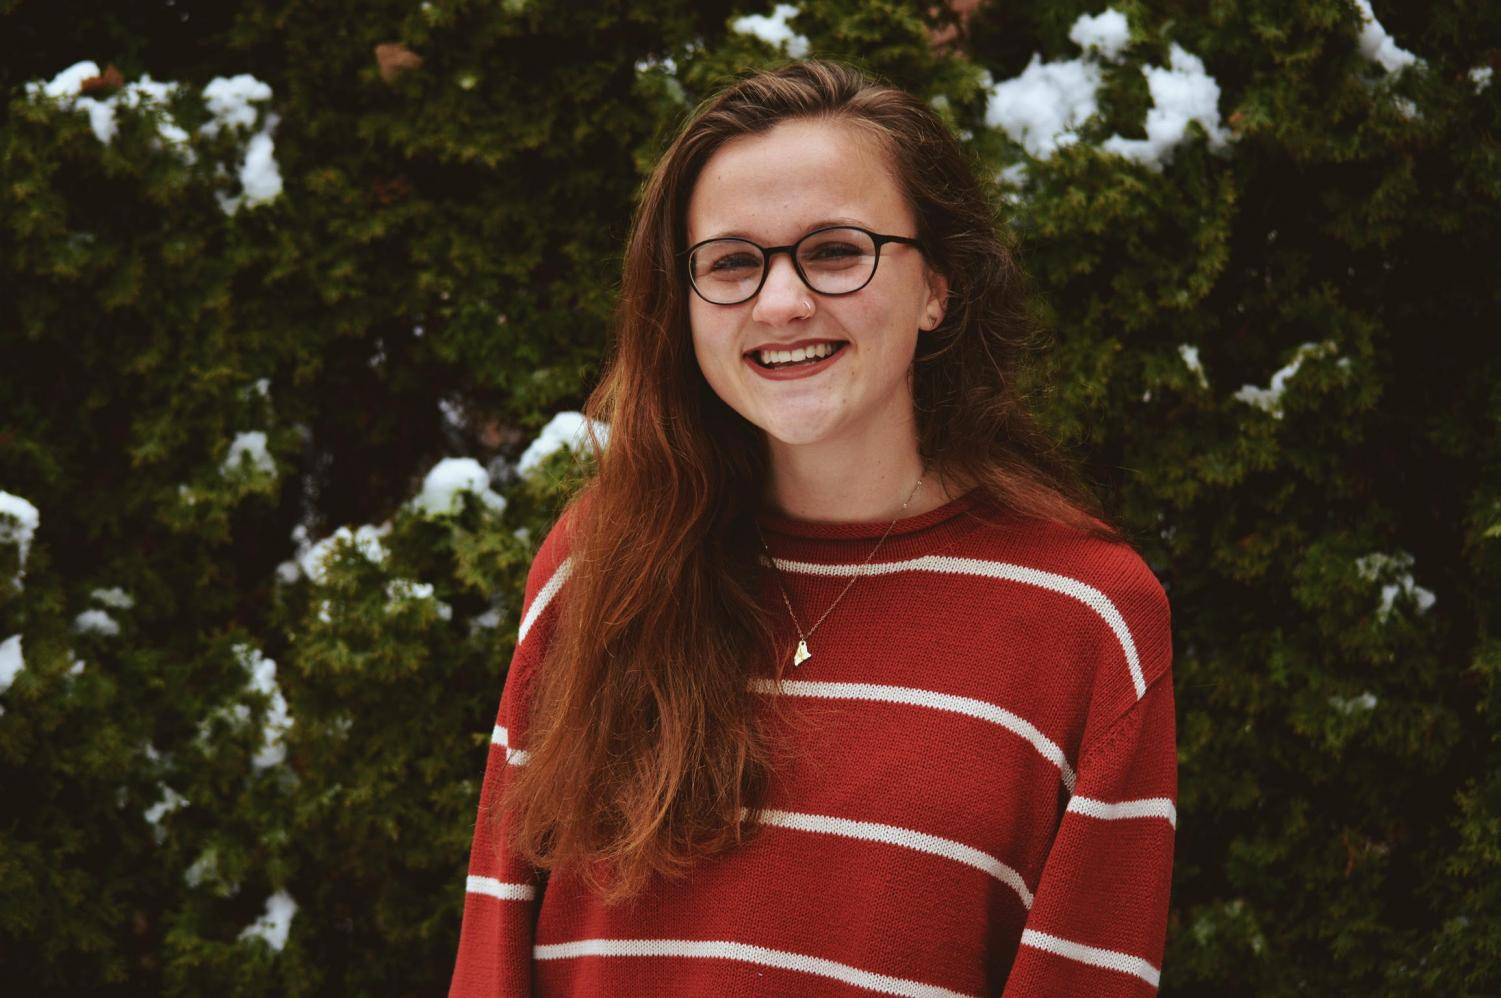 Siana Emery, the editor of her college newspaper.